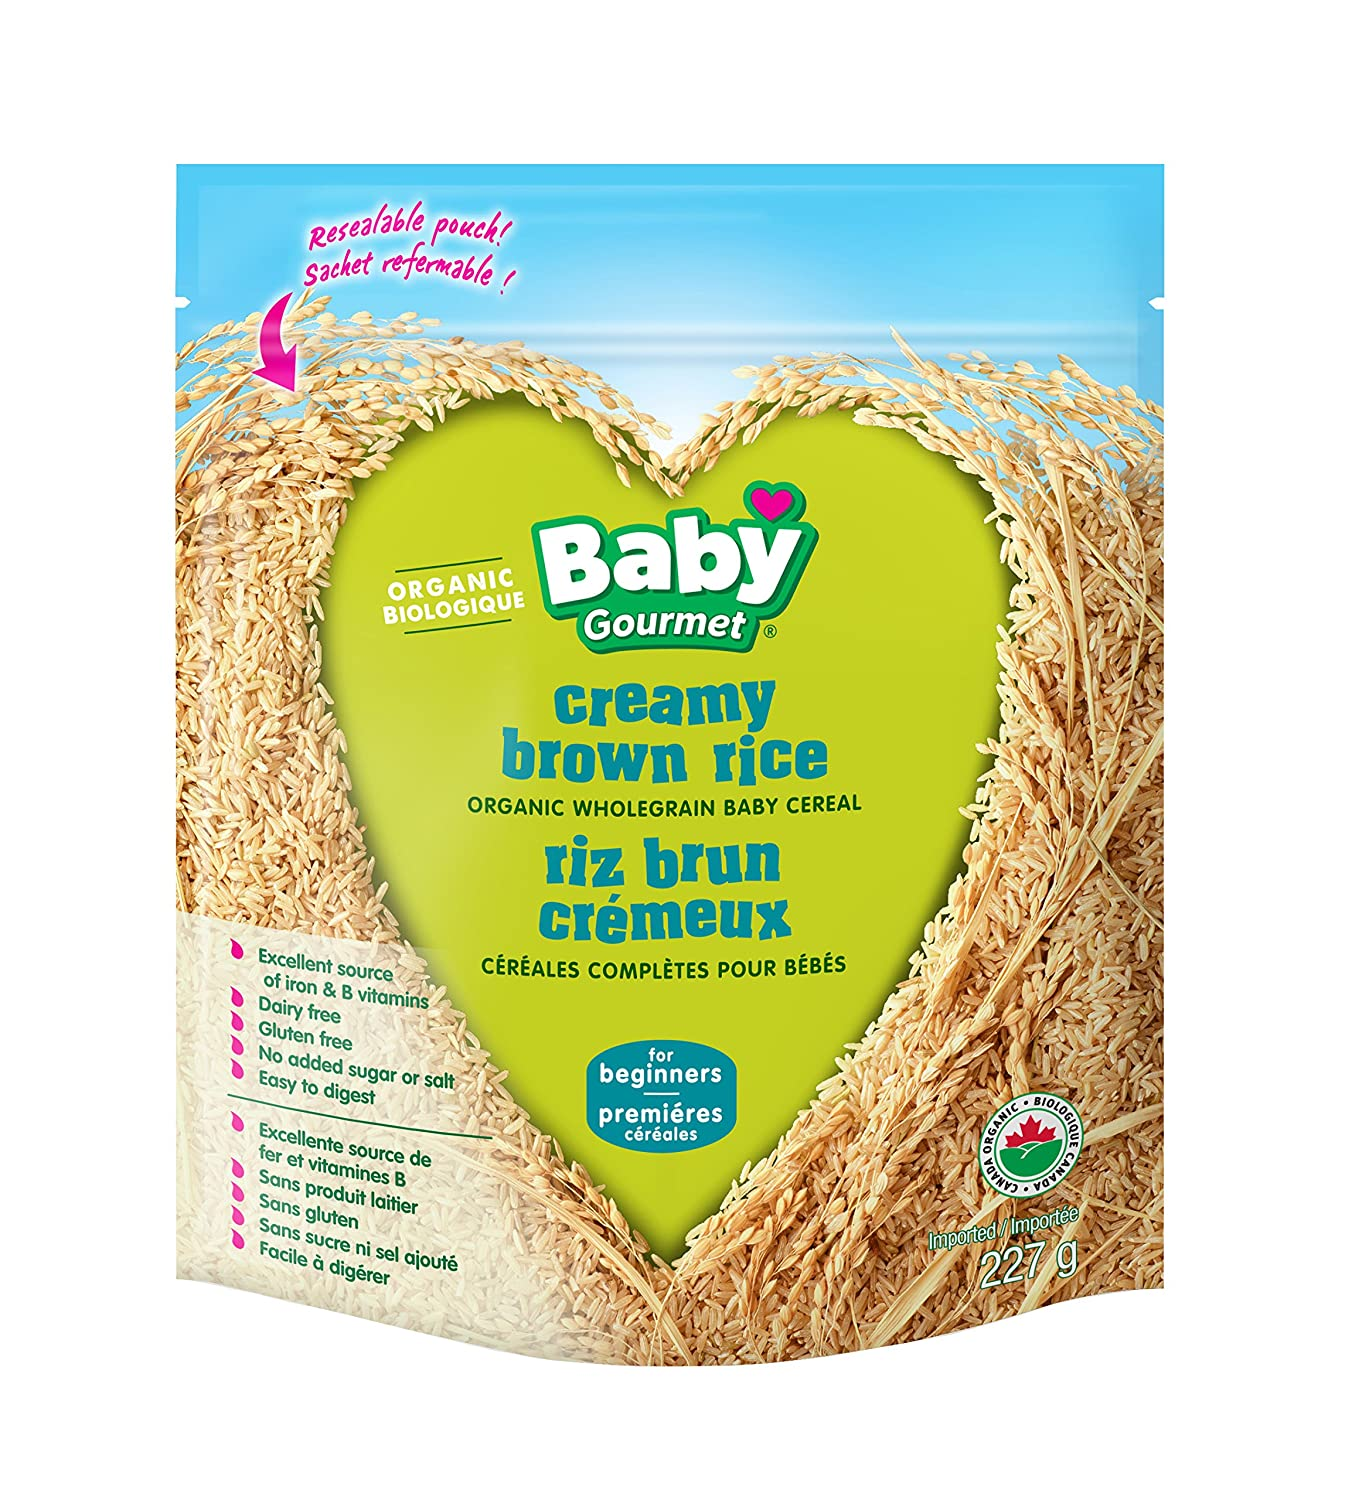 Baby Gourmet Brown Rice Cereal, 6-Pack Baby Gourmet Foods Inc BRRCCERCSCD0006